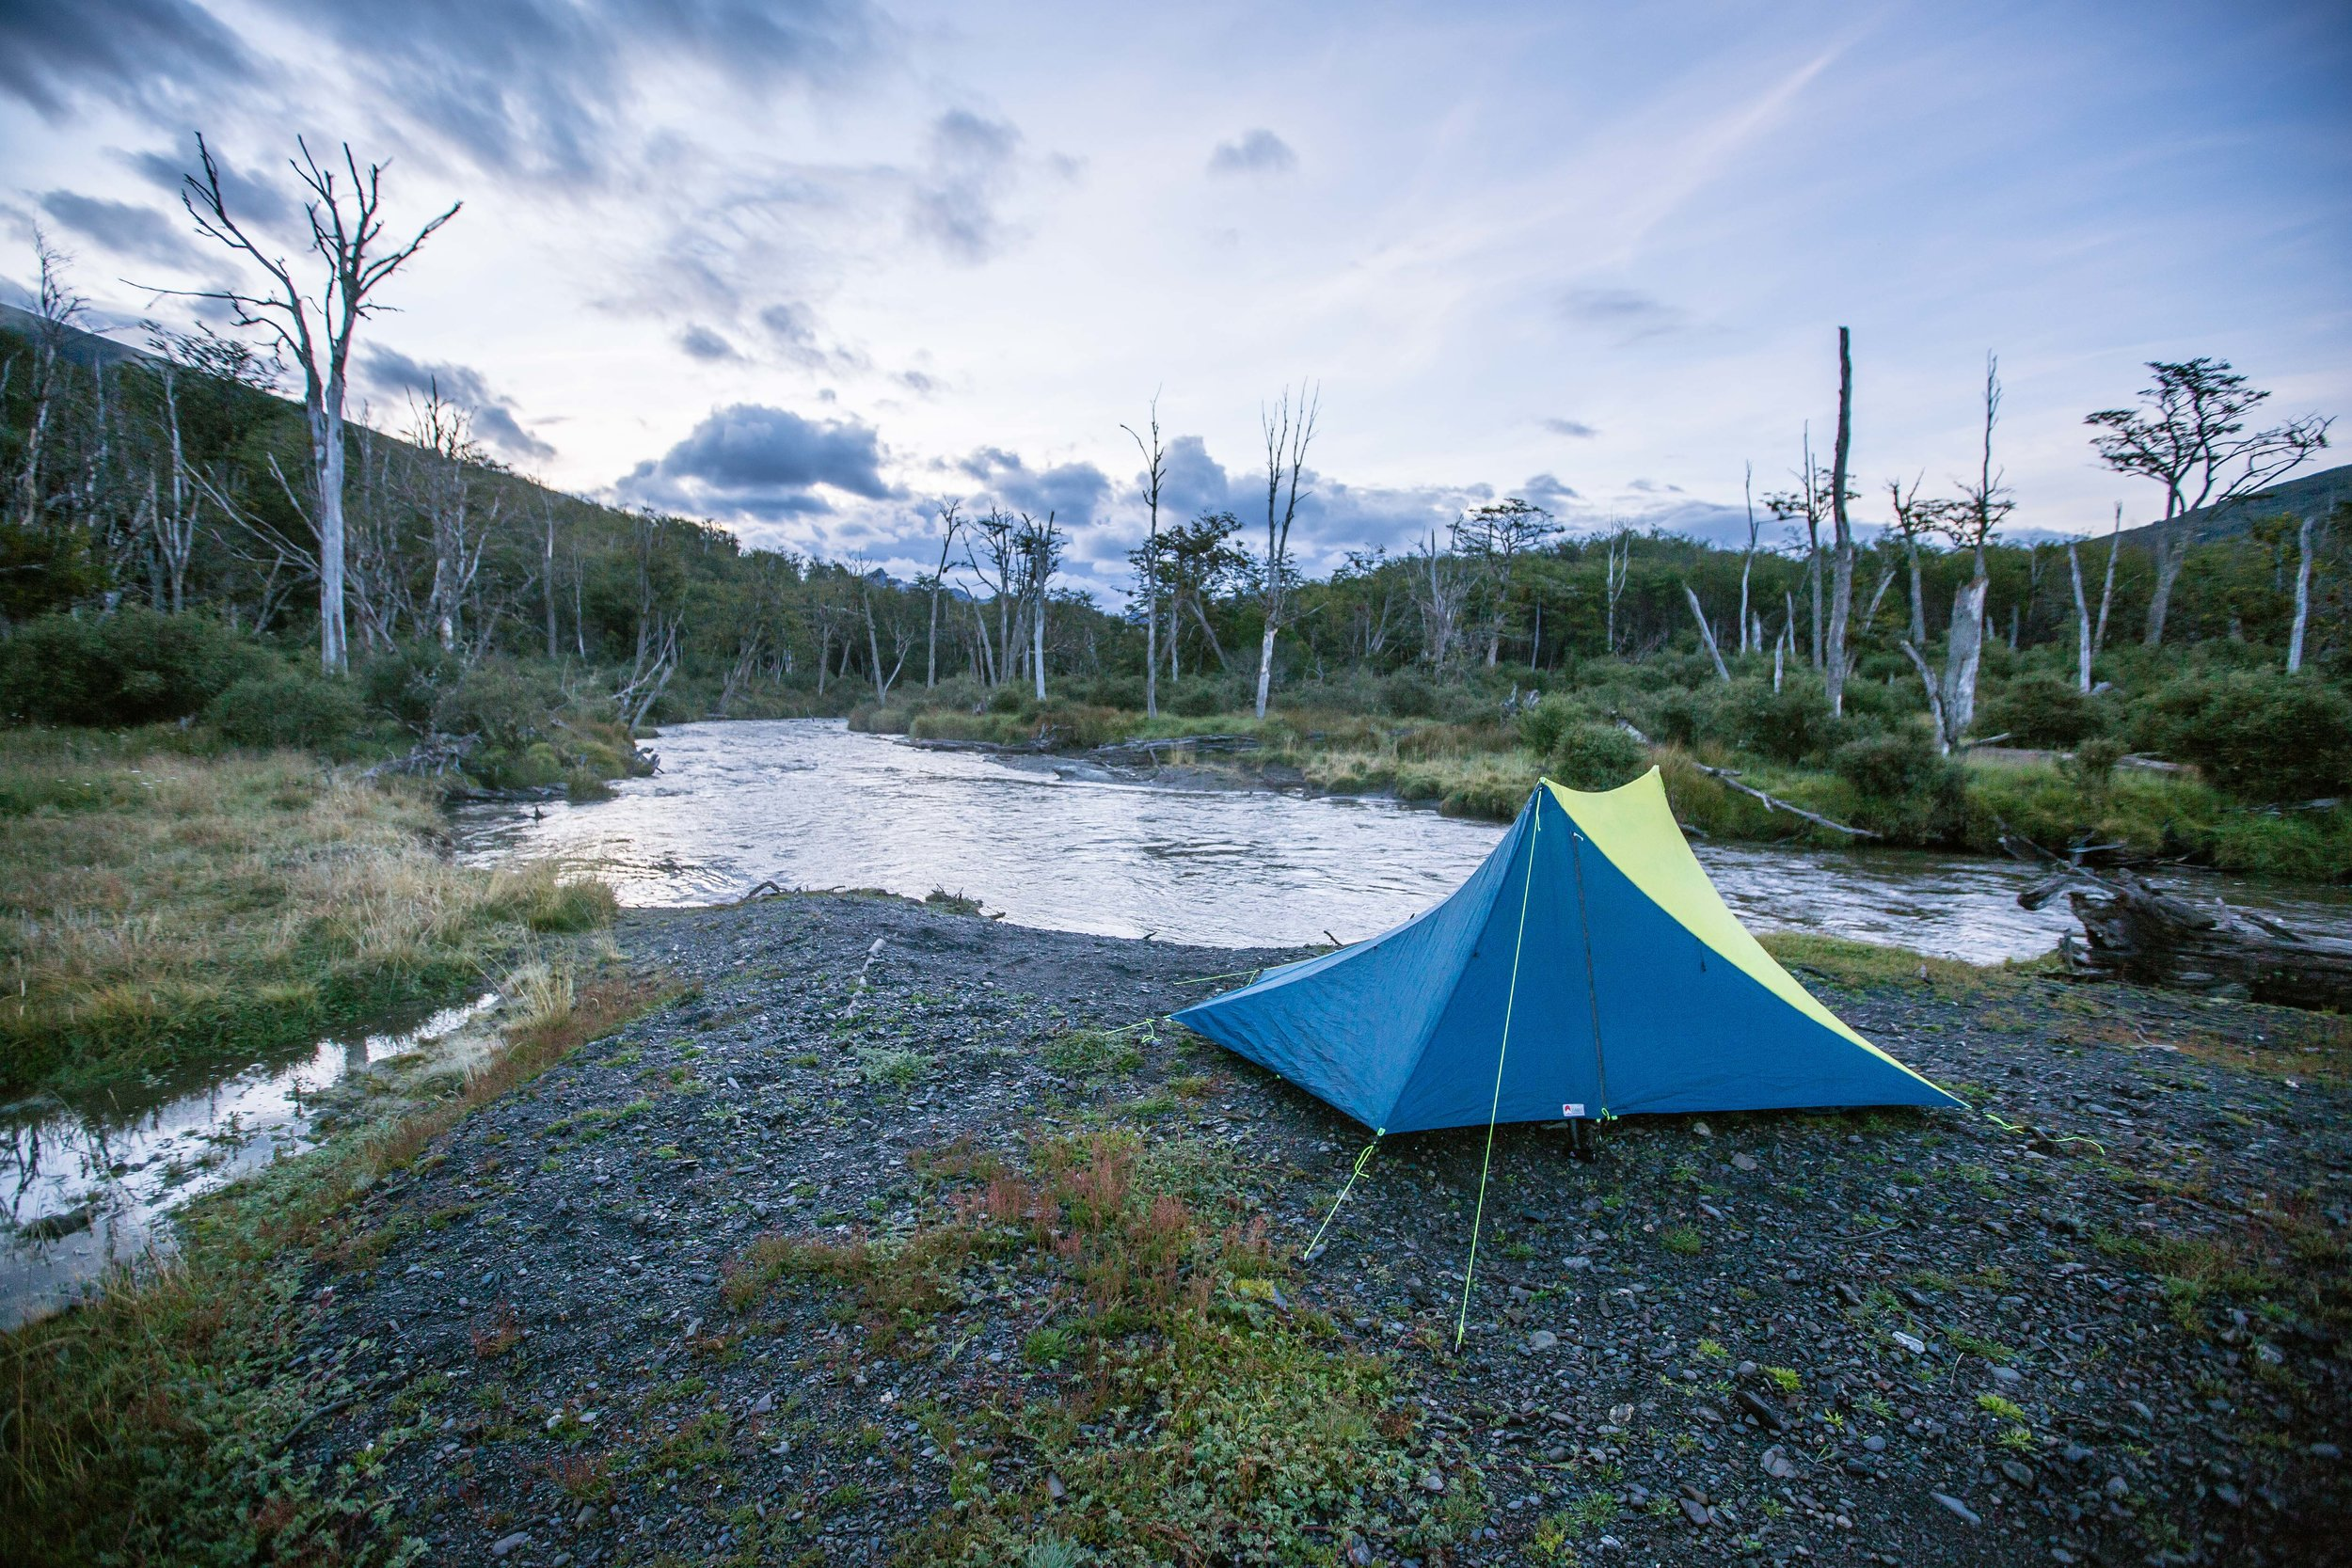 A bit of blue in a sea of green: our Yama Mountain Gear tent.